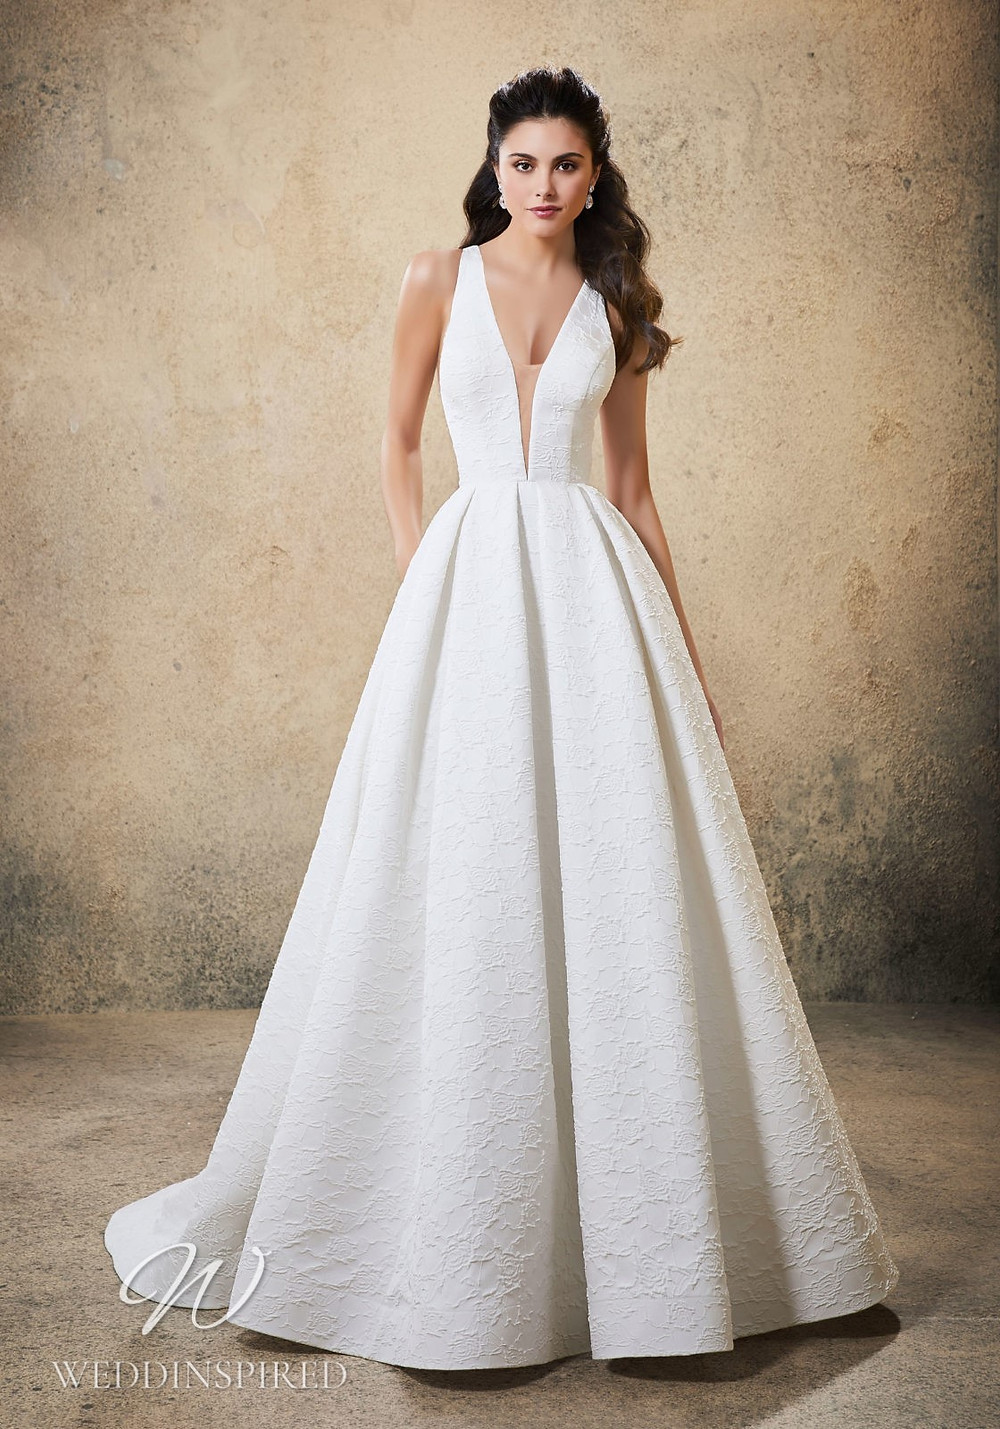 A Madeline Gardner simple A-line wedding dress with a v neck and pockets